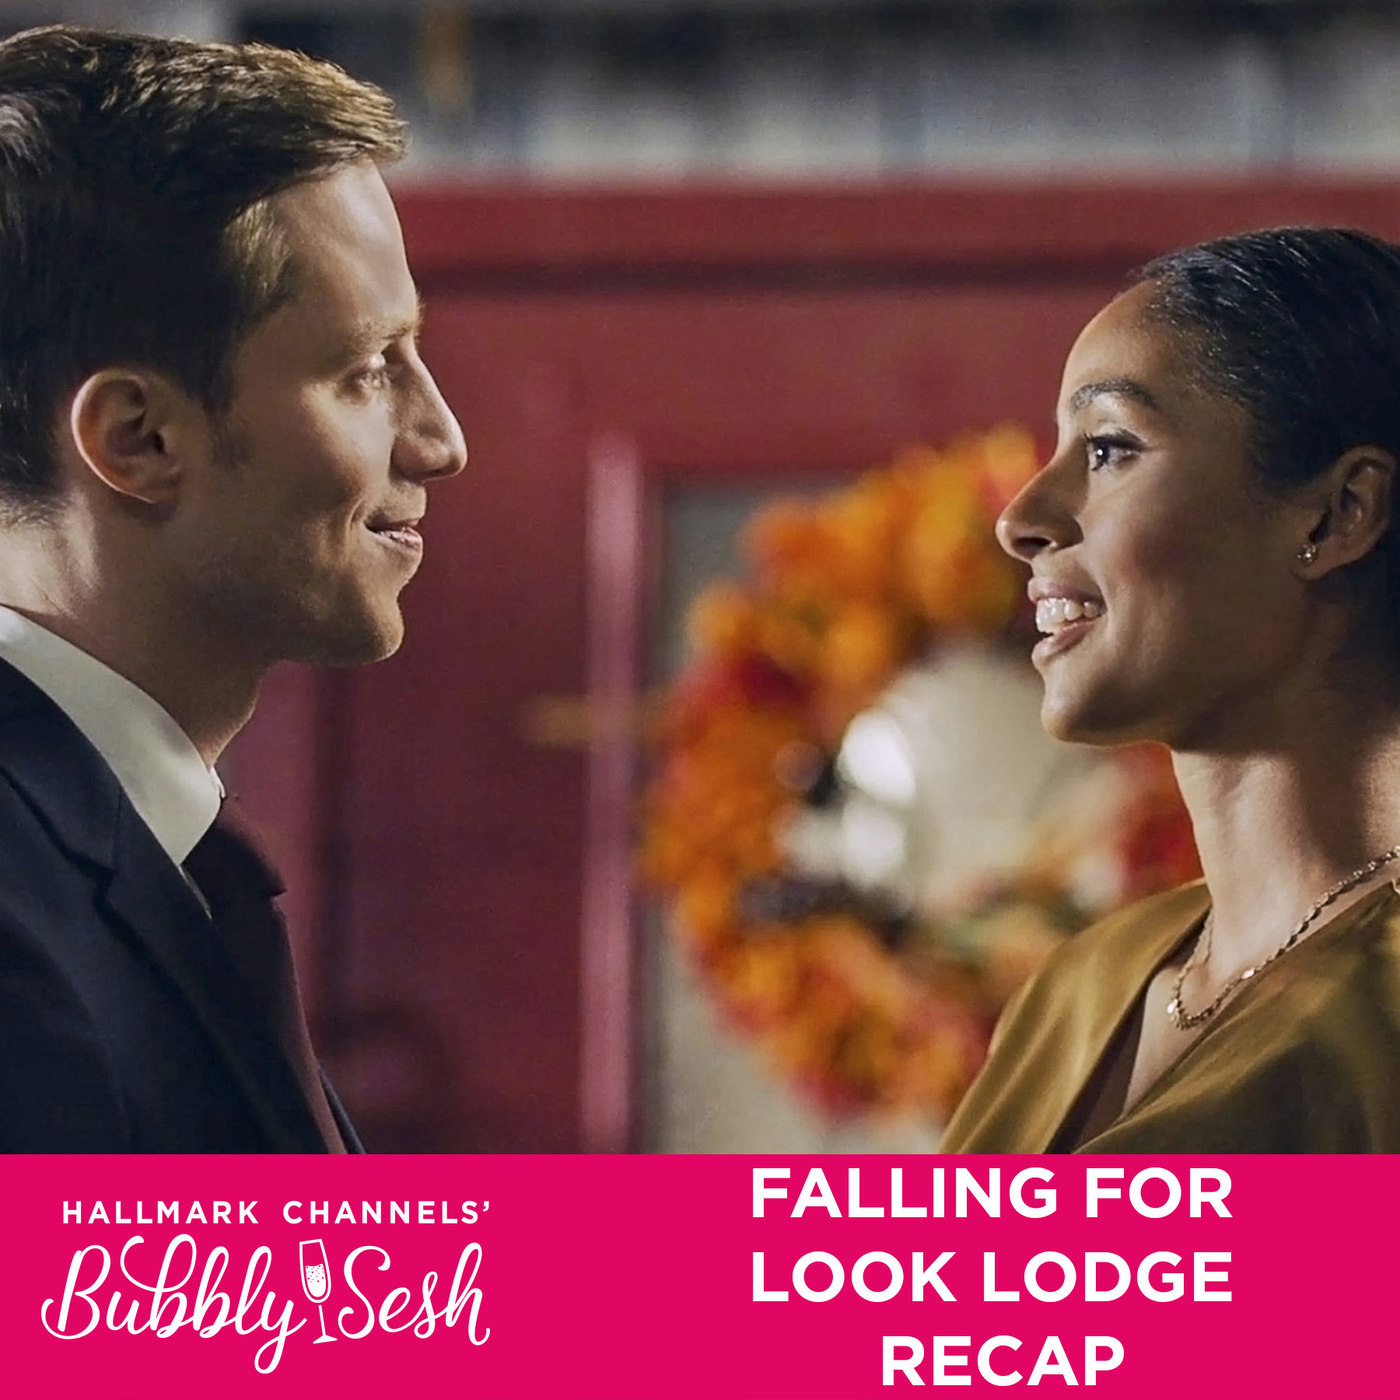 Falling for Look Lodge Recap